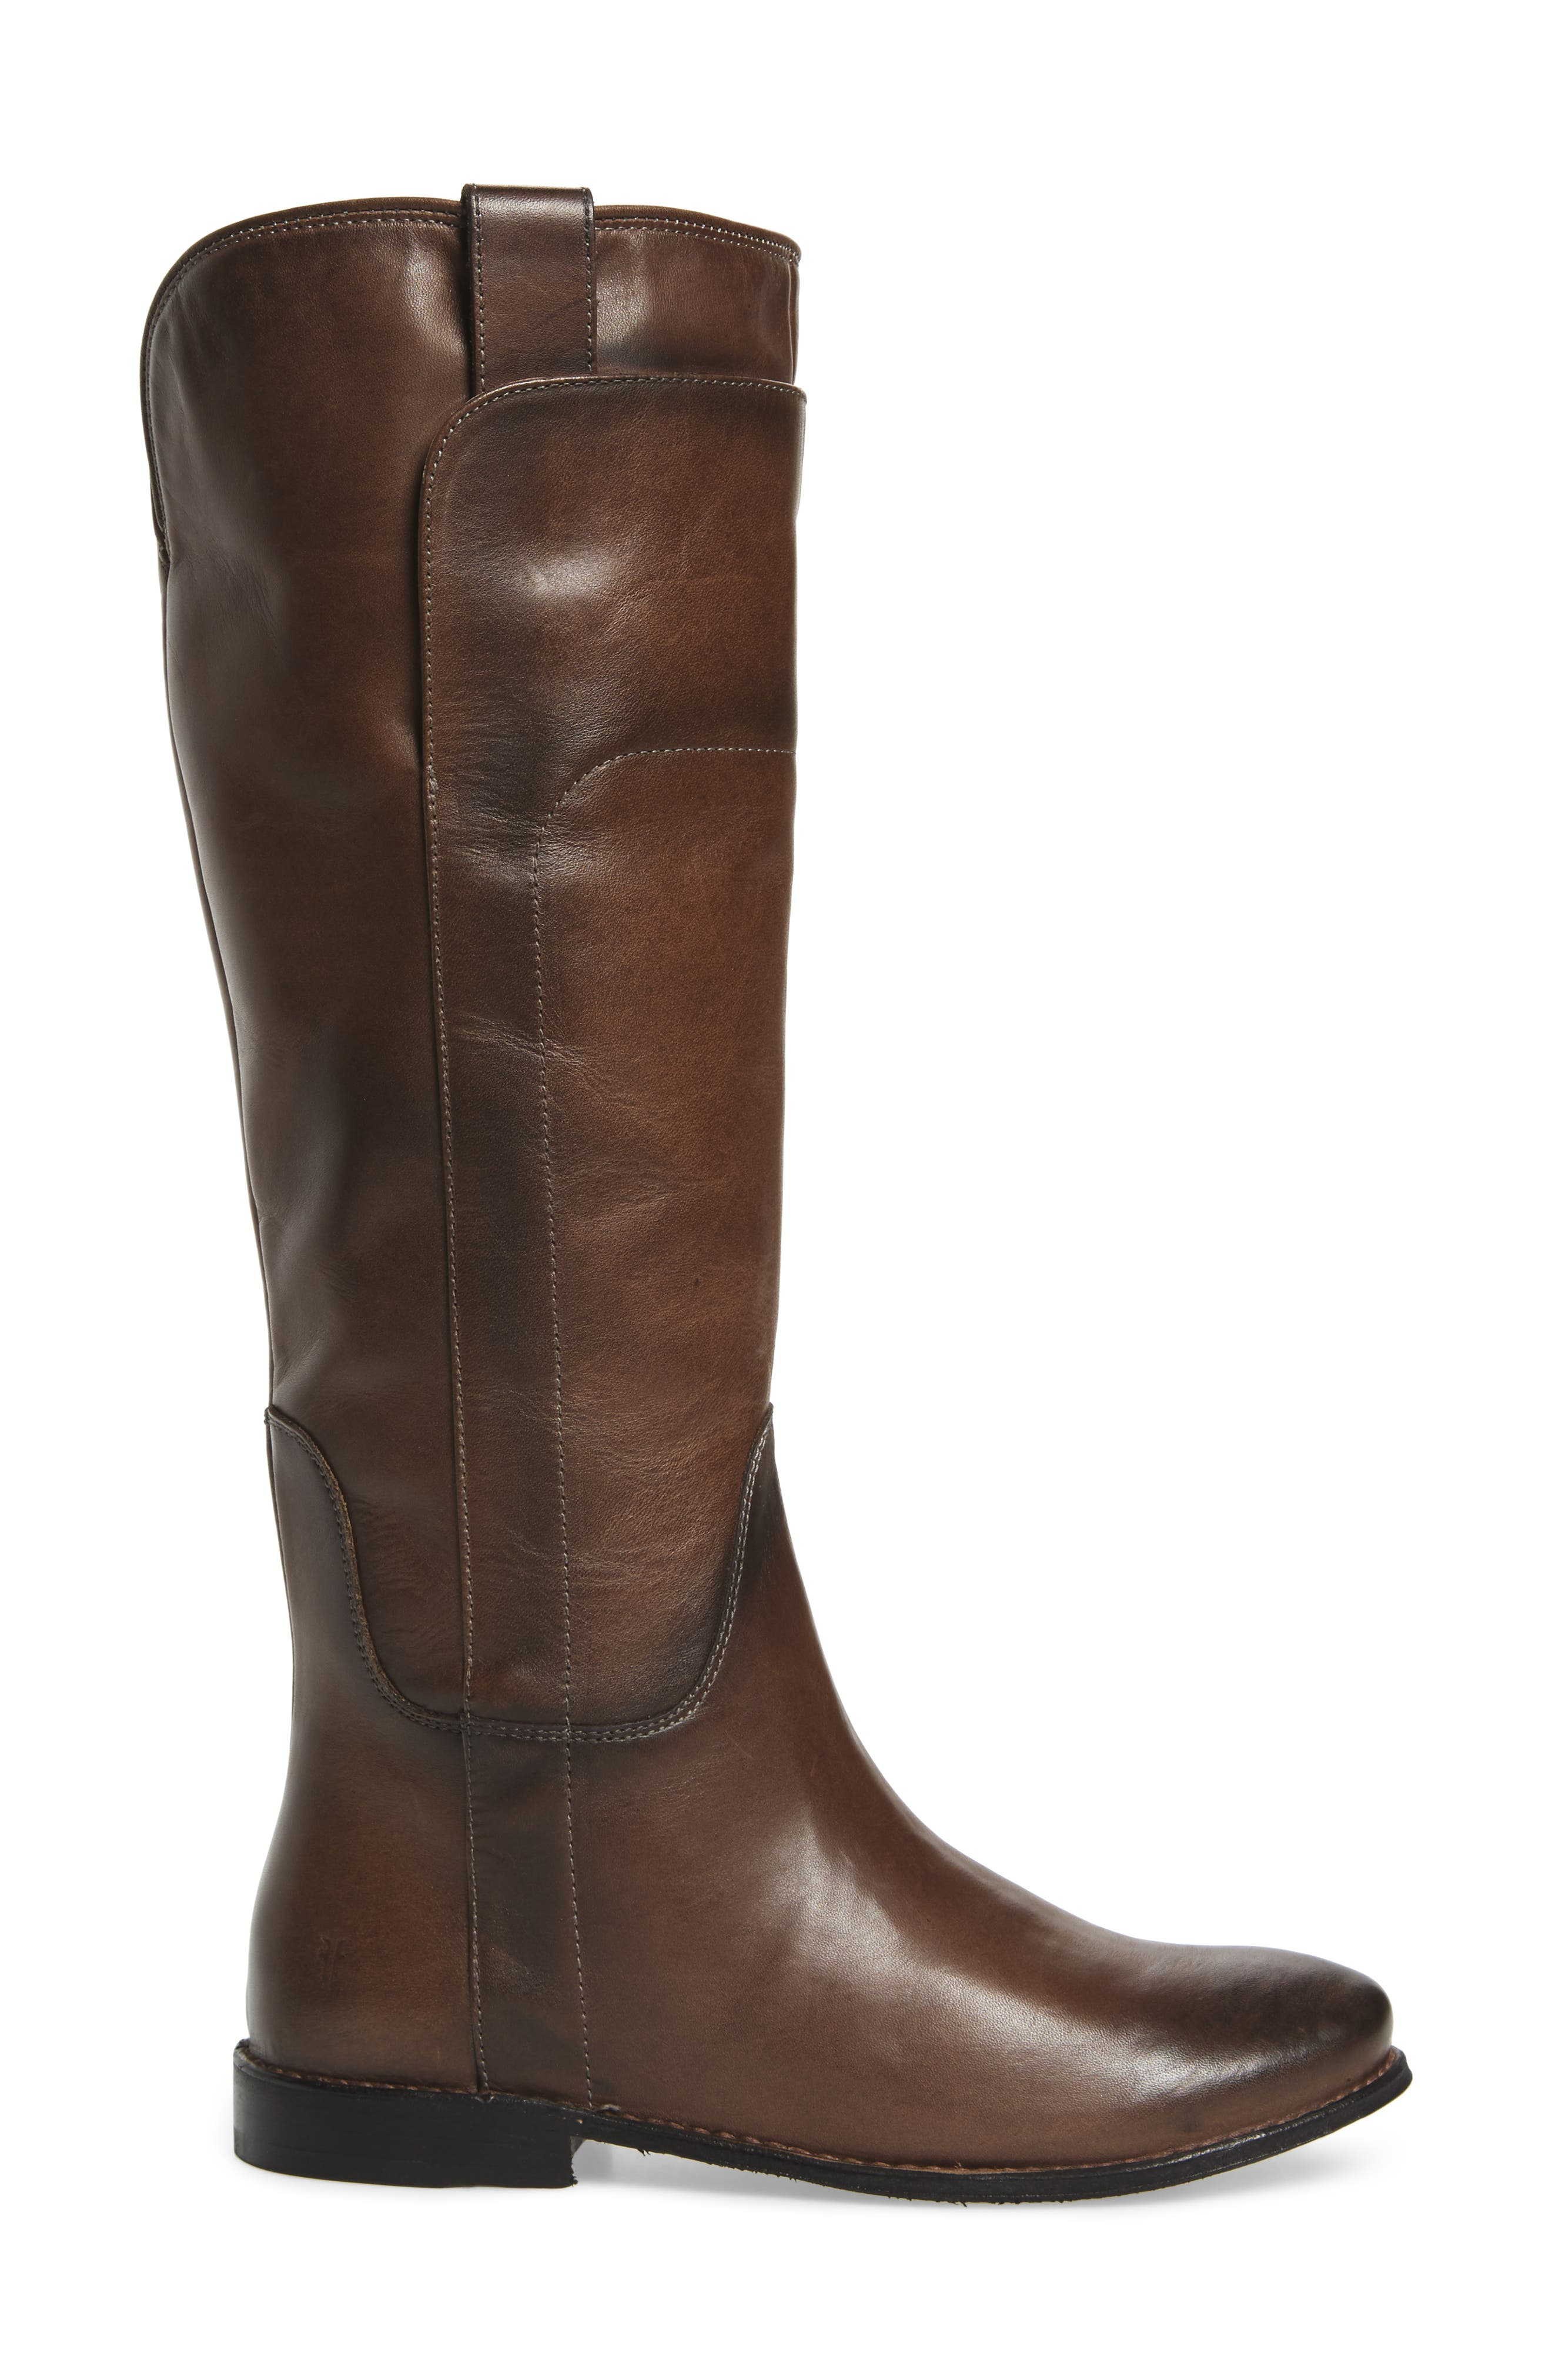 Paige Tall Riding Boot,                             Alternate thumbnail 3, color,                             Smoke